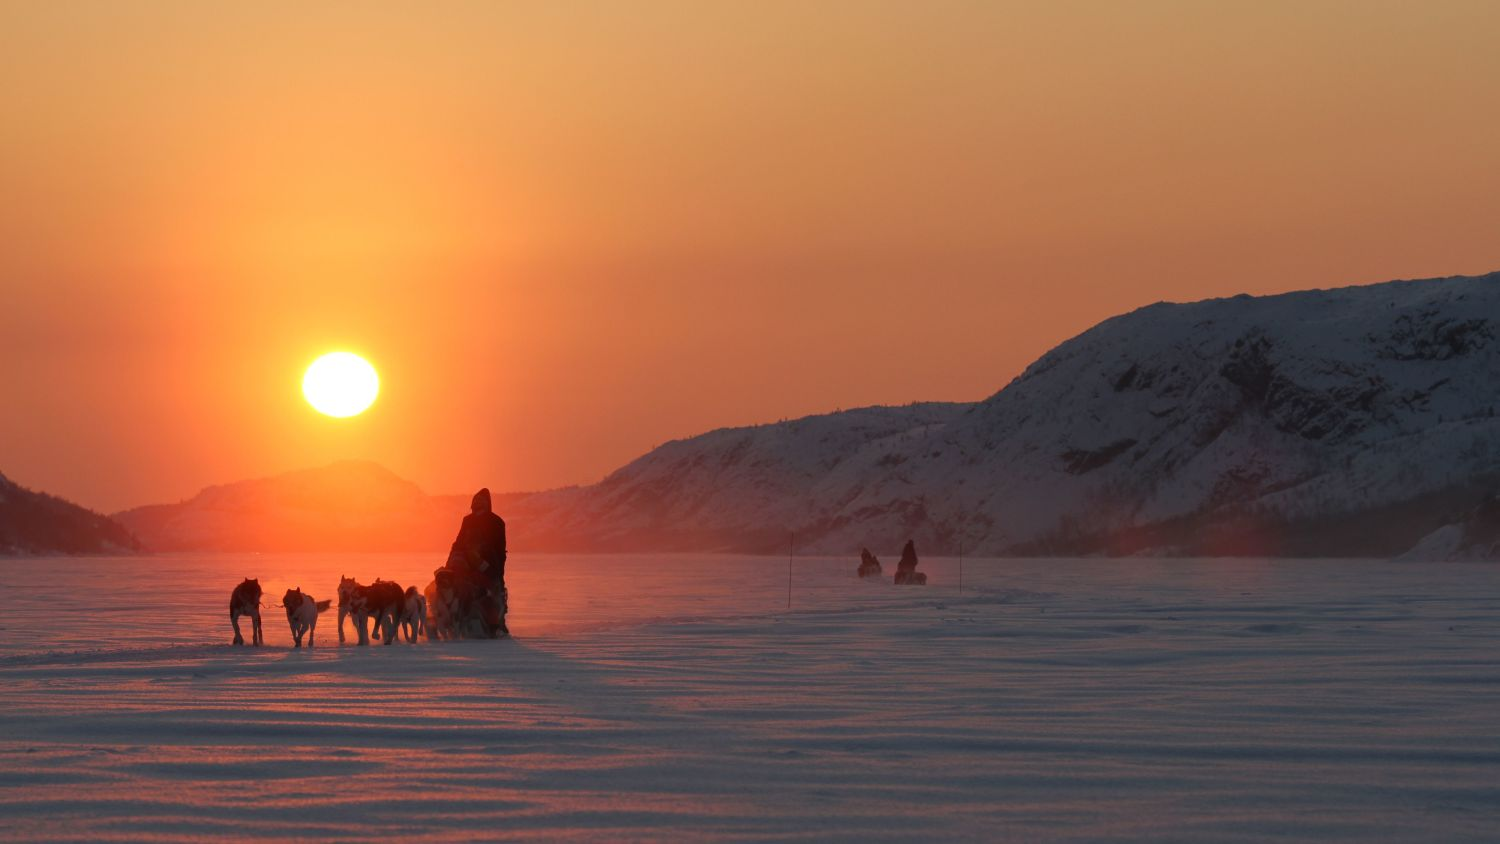 Dog sledding with huskies in the sunset. Photo: Apollonia Körner